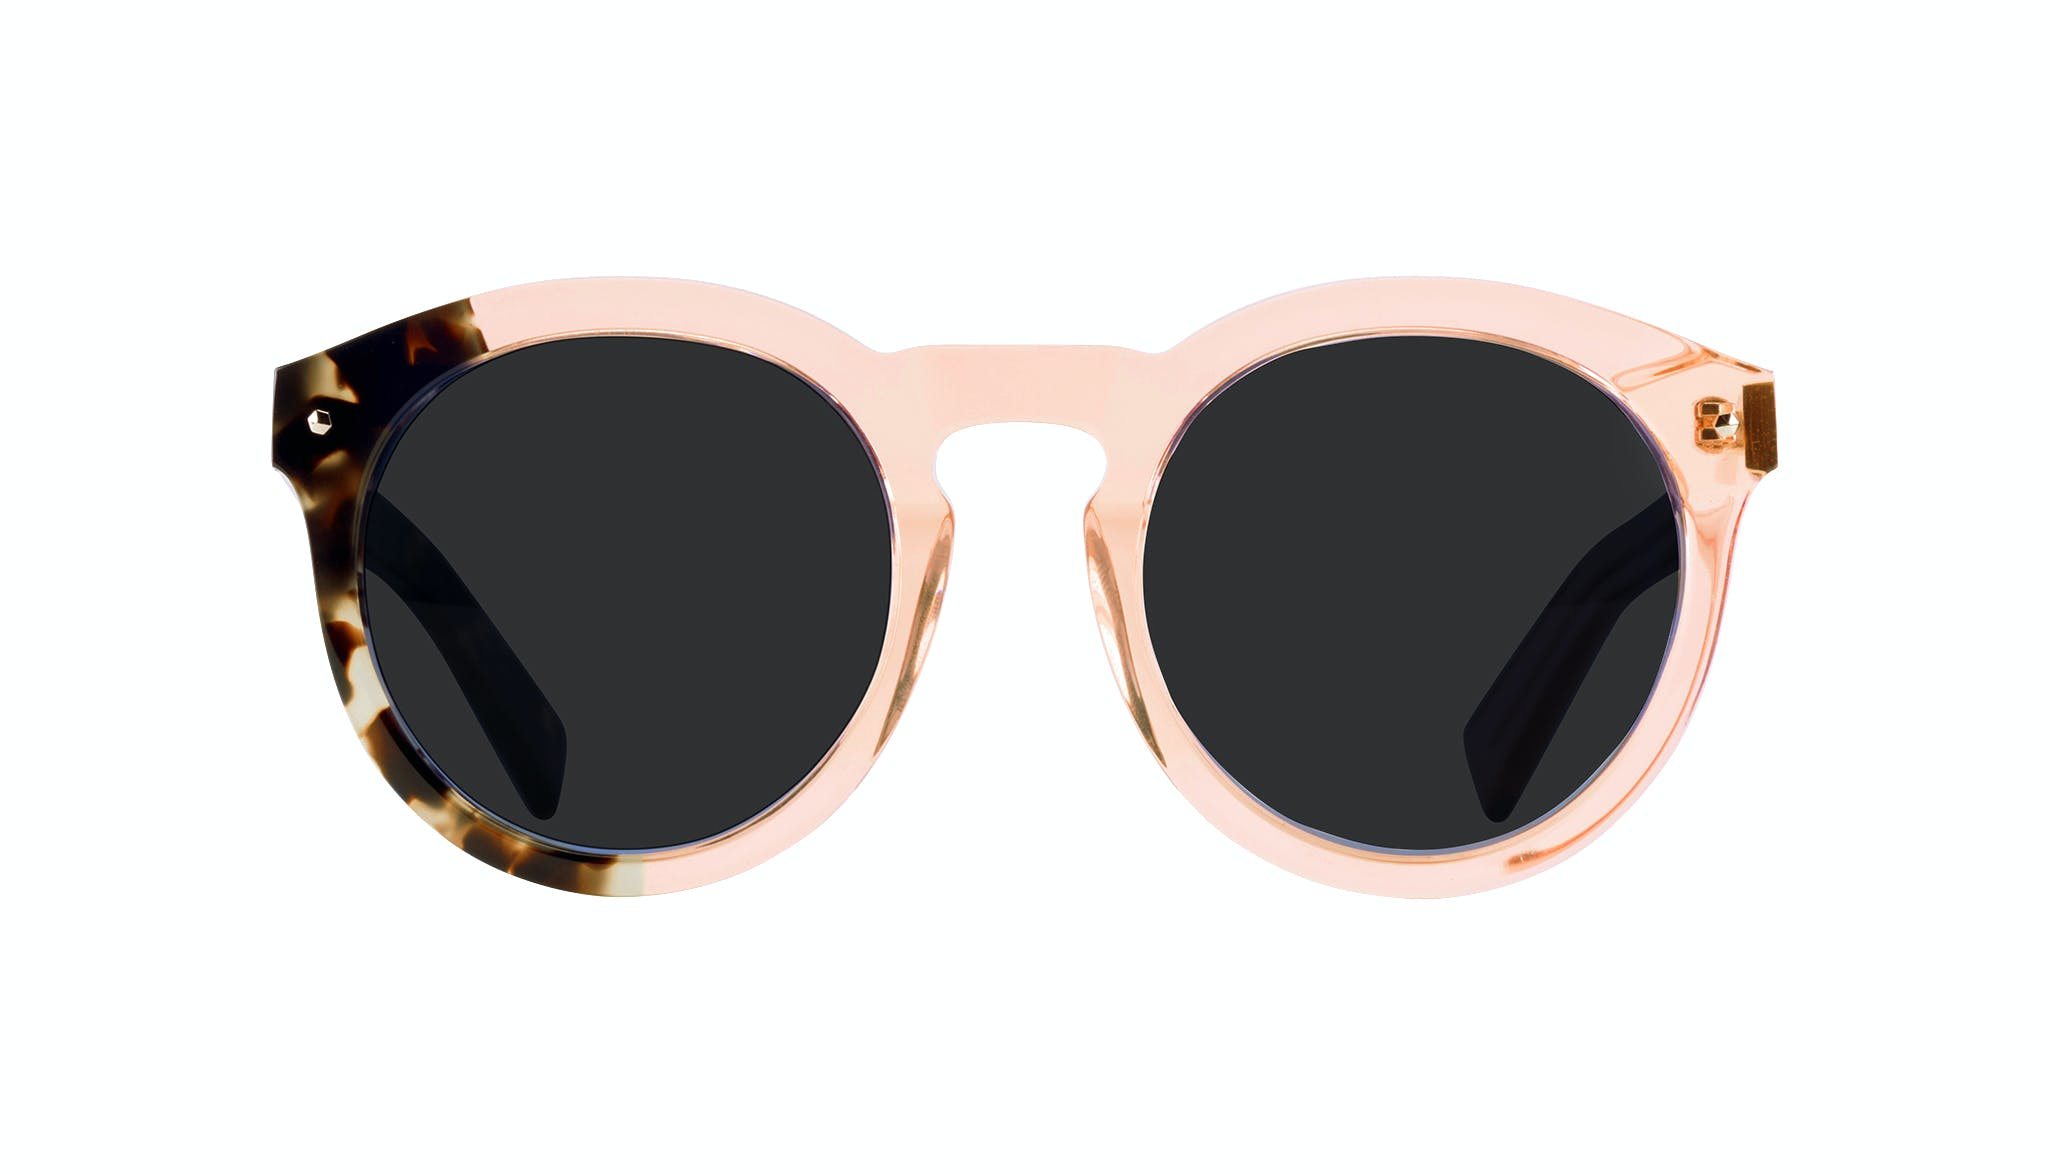 Affordable Fashion Glasses Round Sunglasses Women Mood Peach Front